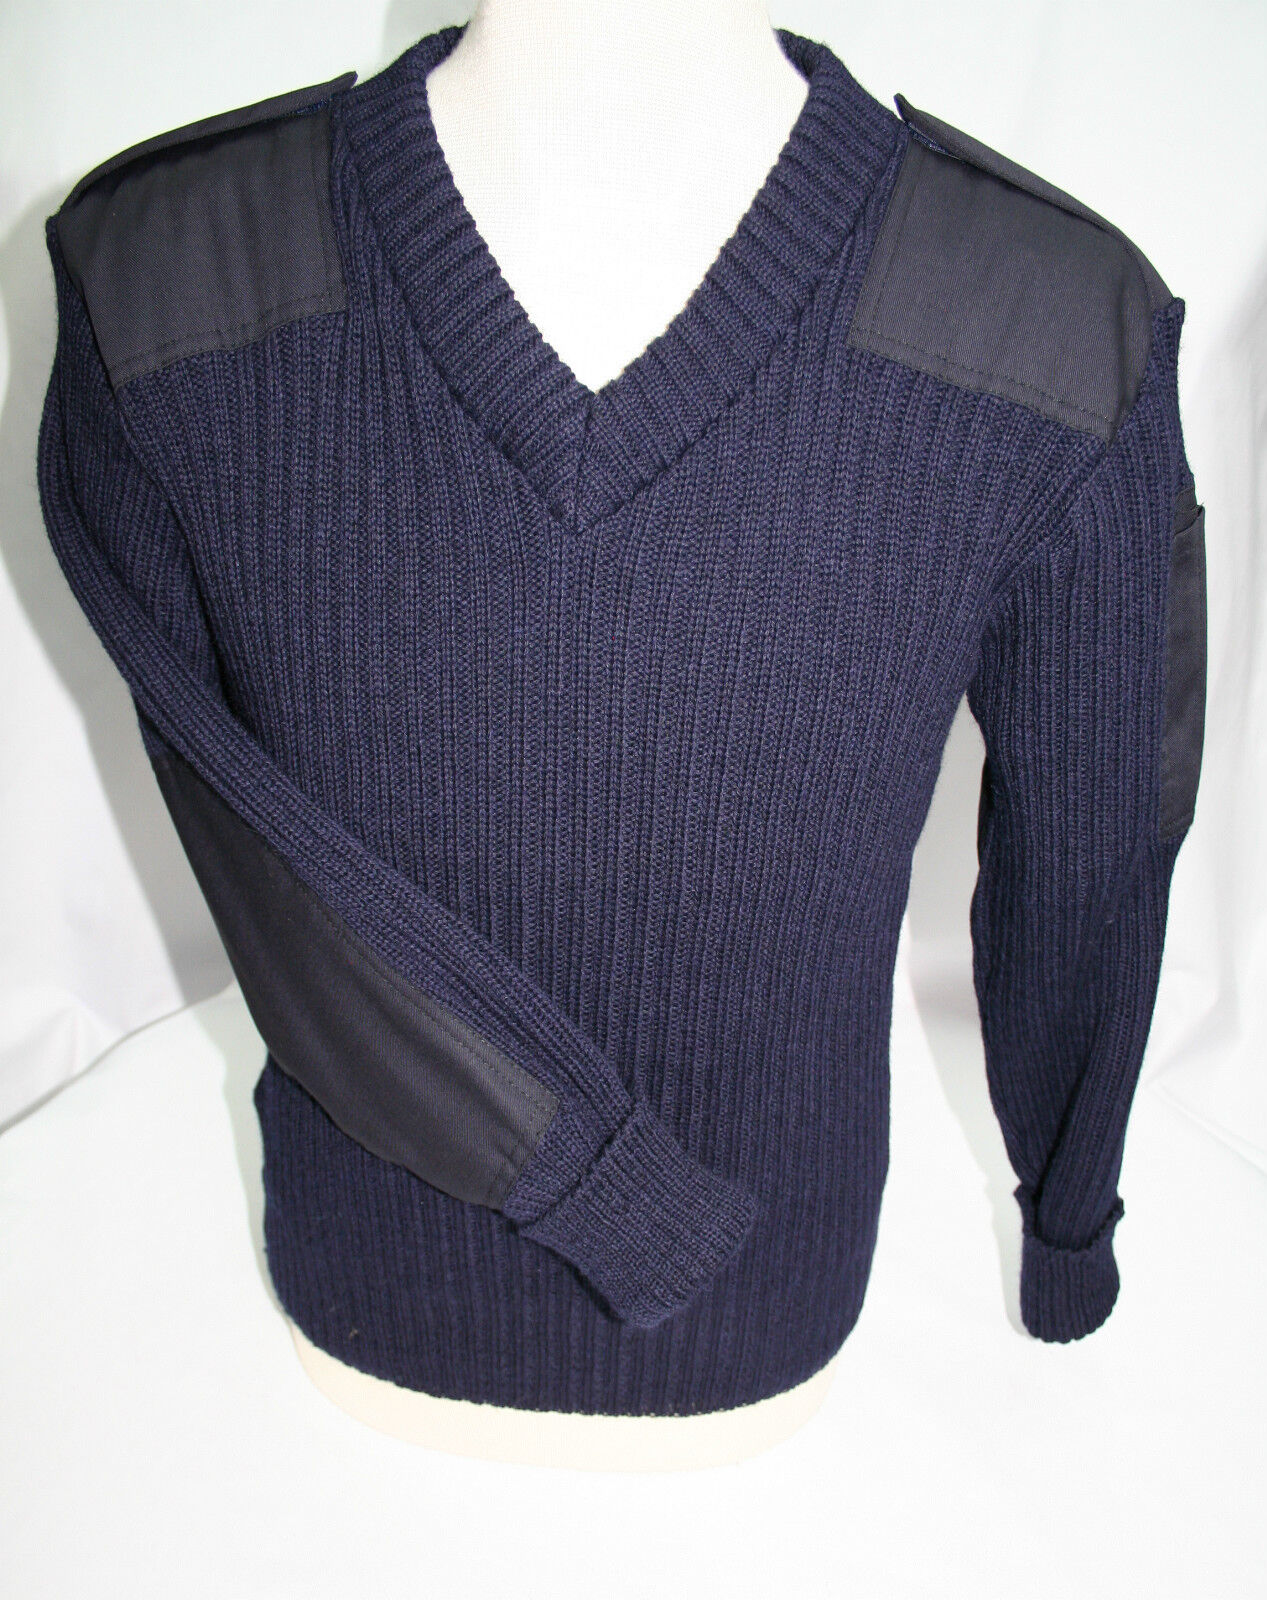 WOOL NATO / ARMY JUMPER. WOOLLY PULLY. OUTDOOR,UNIFORM,SECURITY,MILITARY,  09047